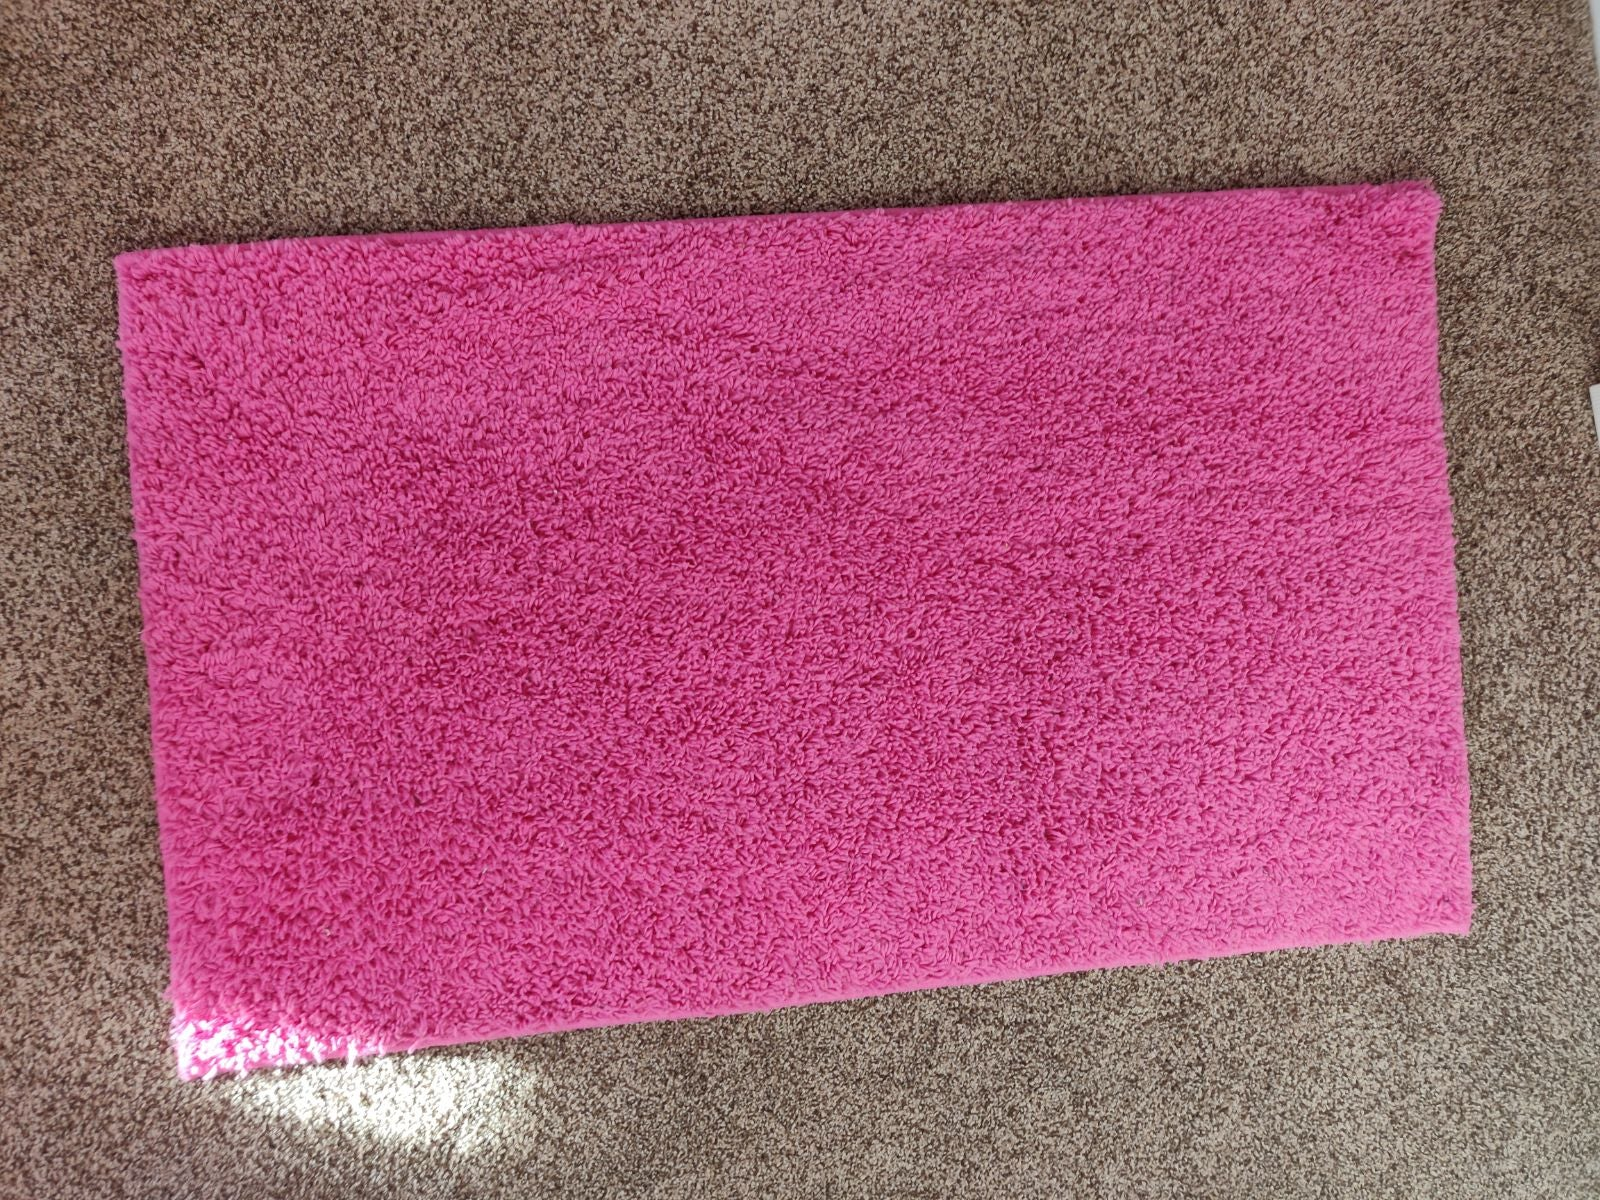 Pink Fuzzy Rug 3.5×2.5